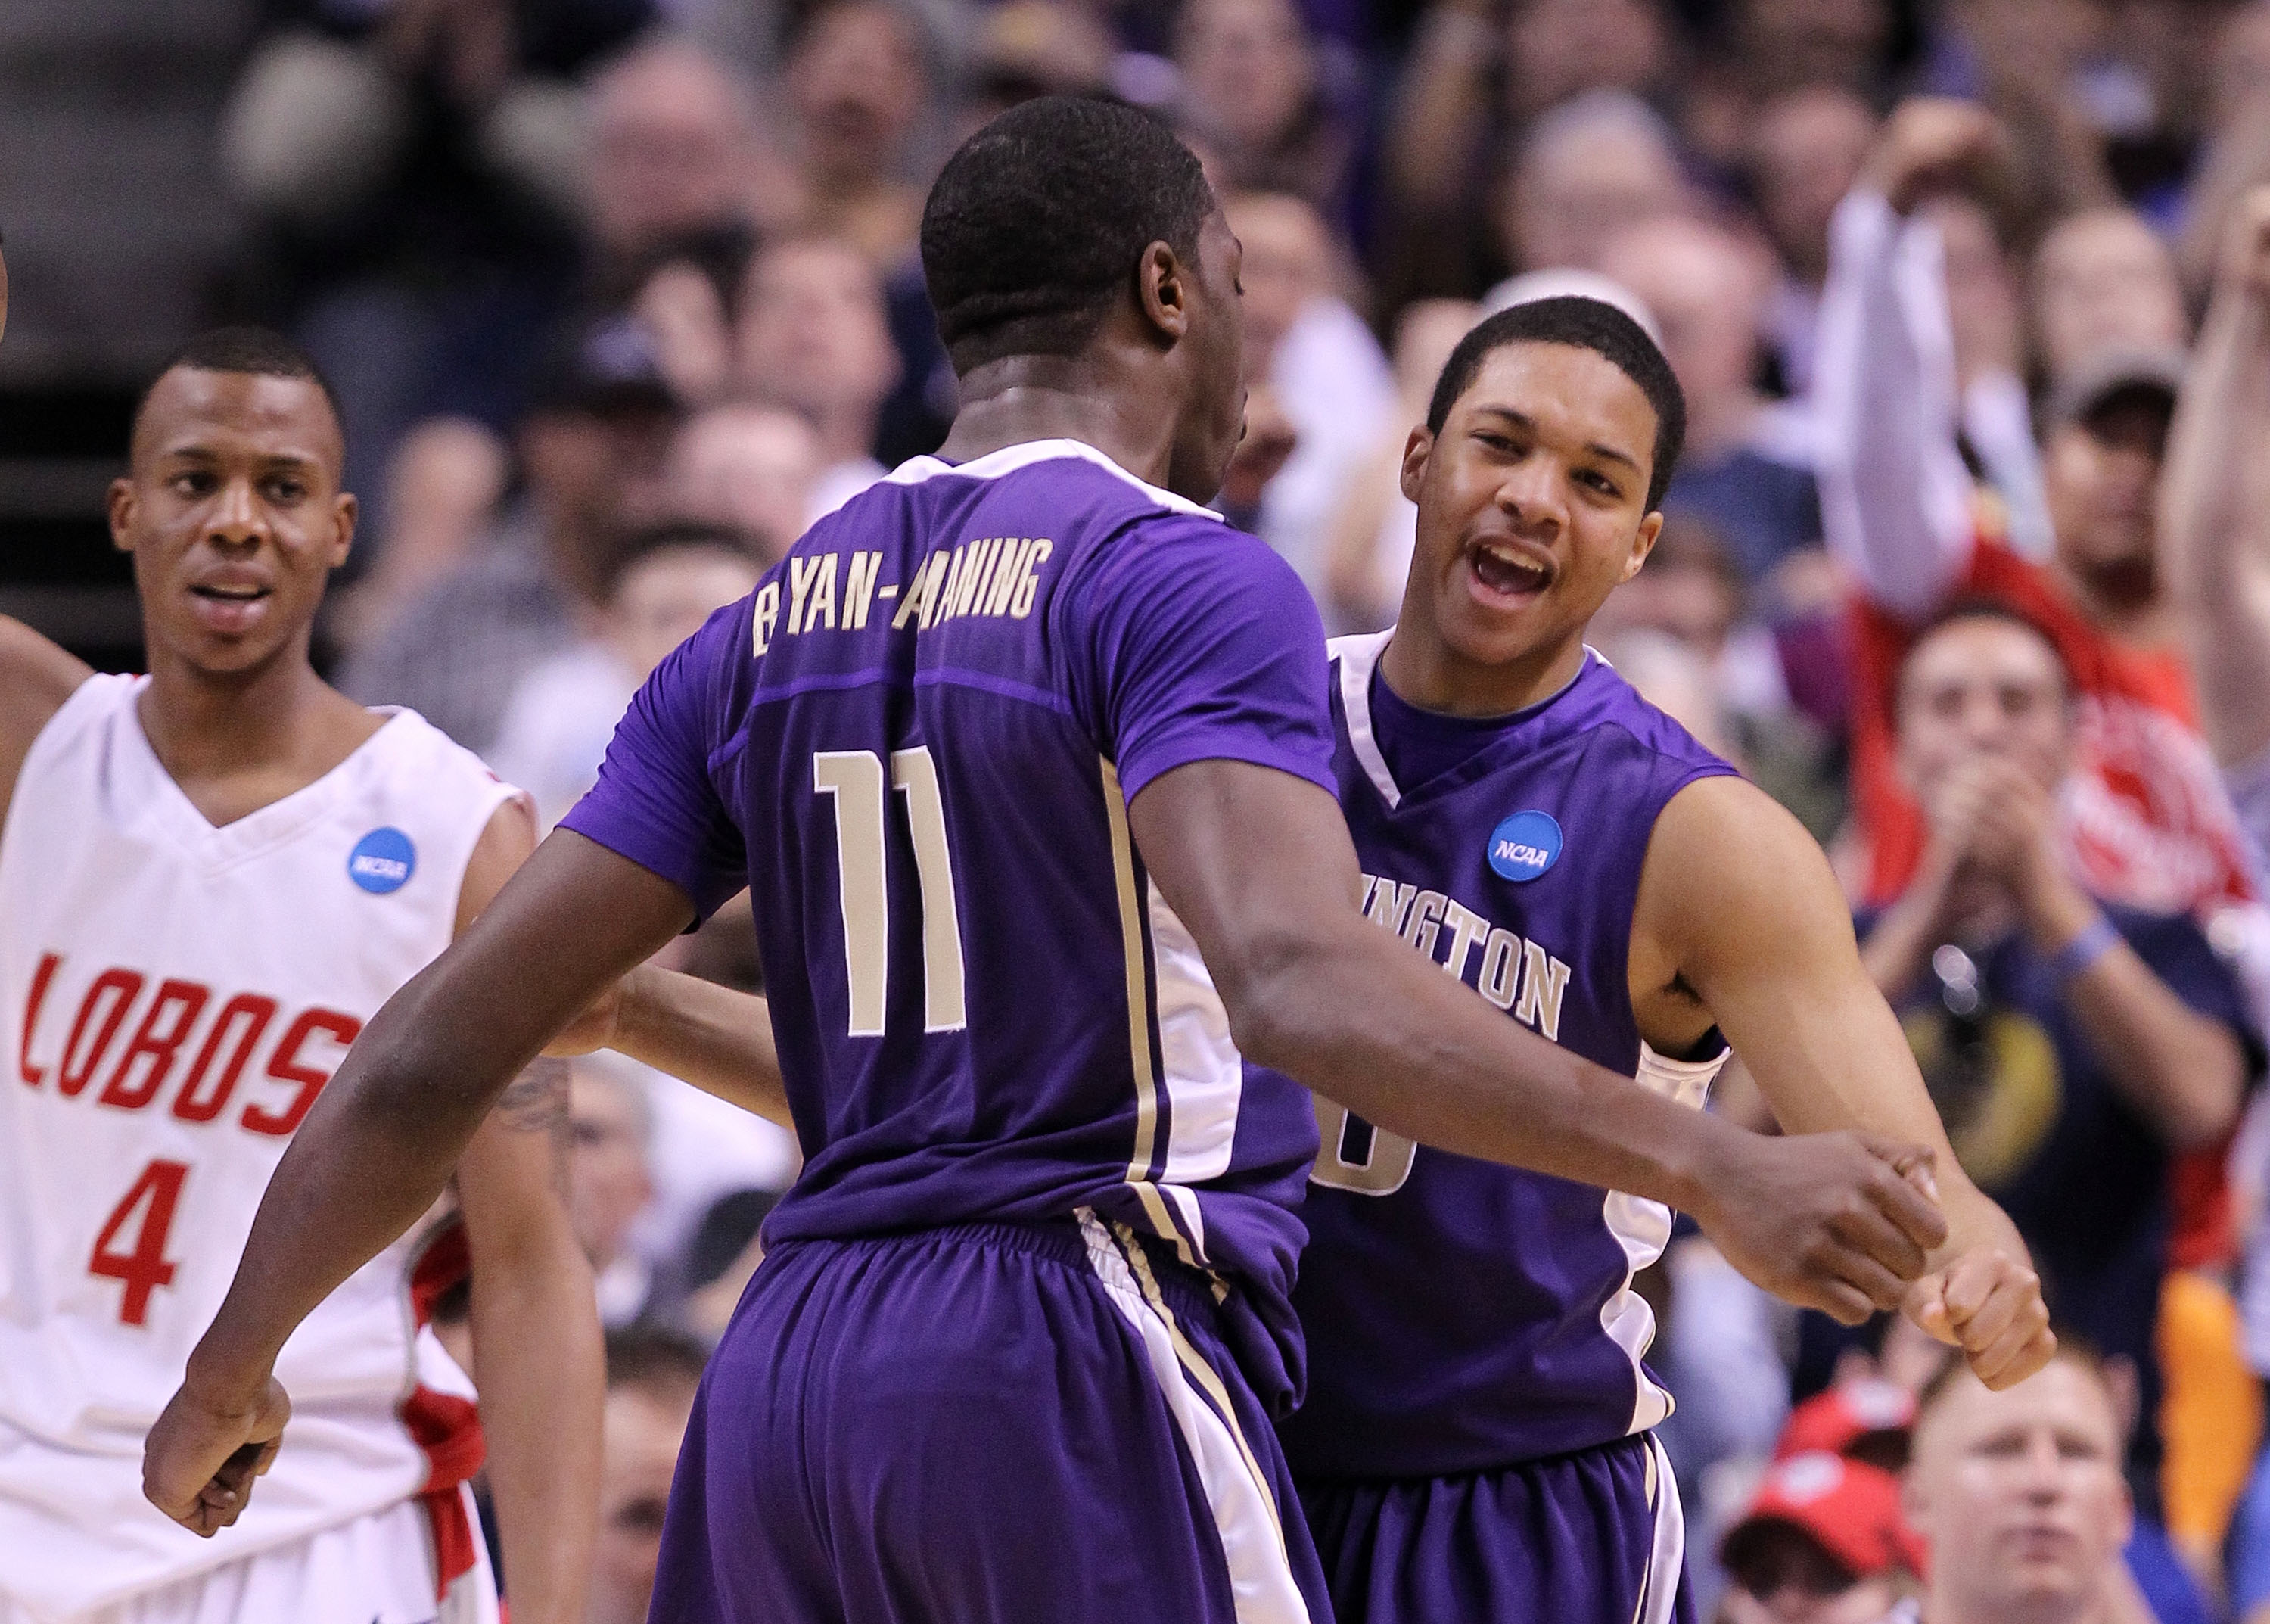 SAN JOSE, CA - MARCH 20:  Forward Matthew Bryan-Amaning #11 and Abdul Gaddy #10 of the Washington Huskies celebrates after a play against the New Mexico Lobos during the second round of the 2010 NCAA men's basketball tournament at HP Pavilion on March 20,